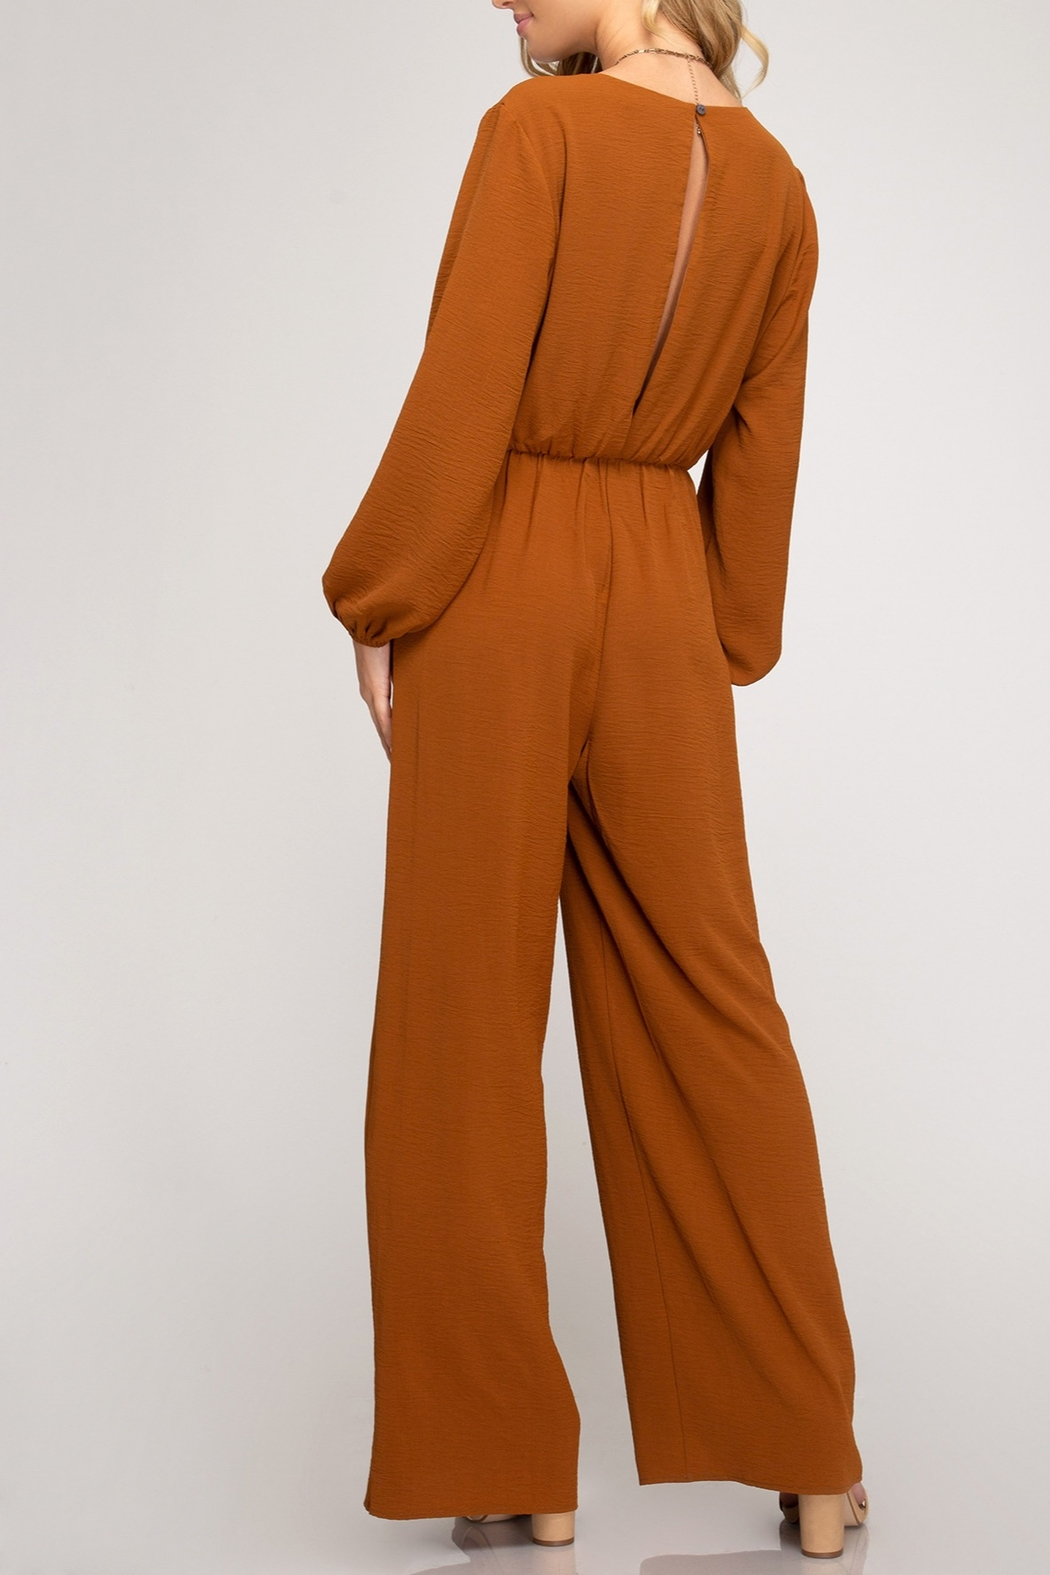 She + Sky Twisty Treats Jumpsuit - Front Full Image